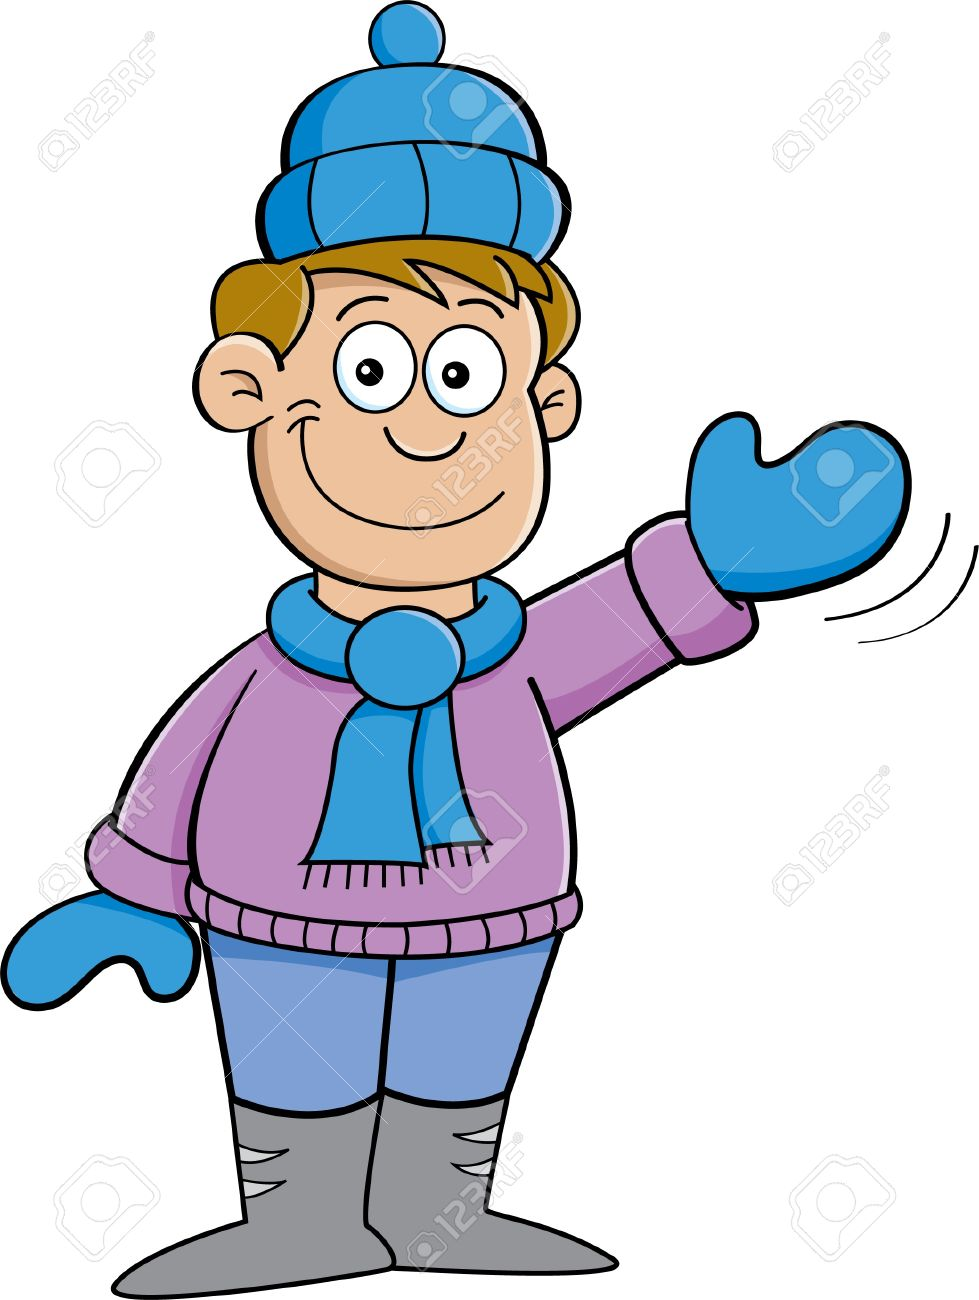 979x1300 Cartoon Illustration Of A Boy In Winter Clothes Waving Royalty